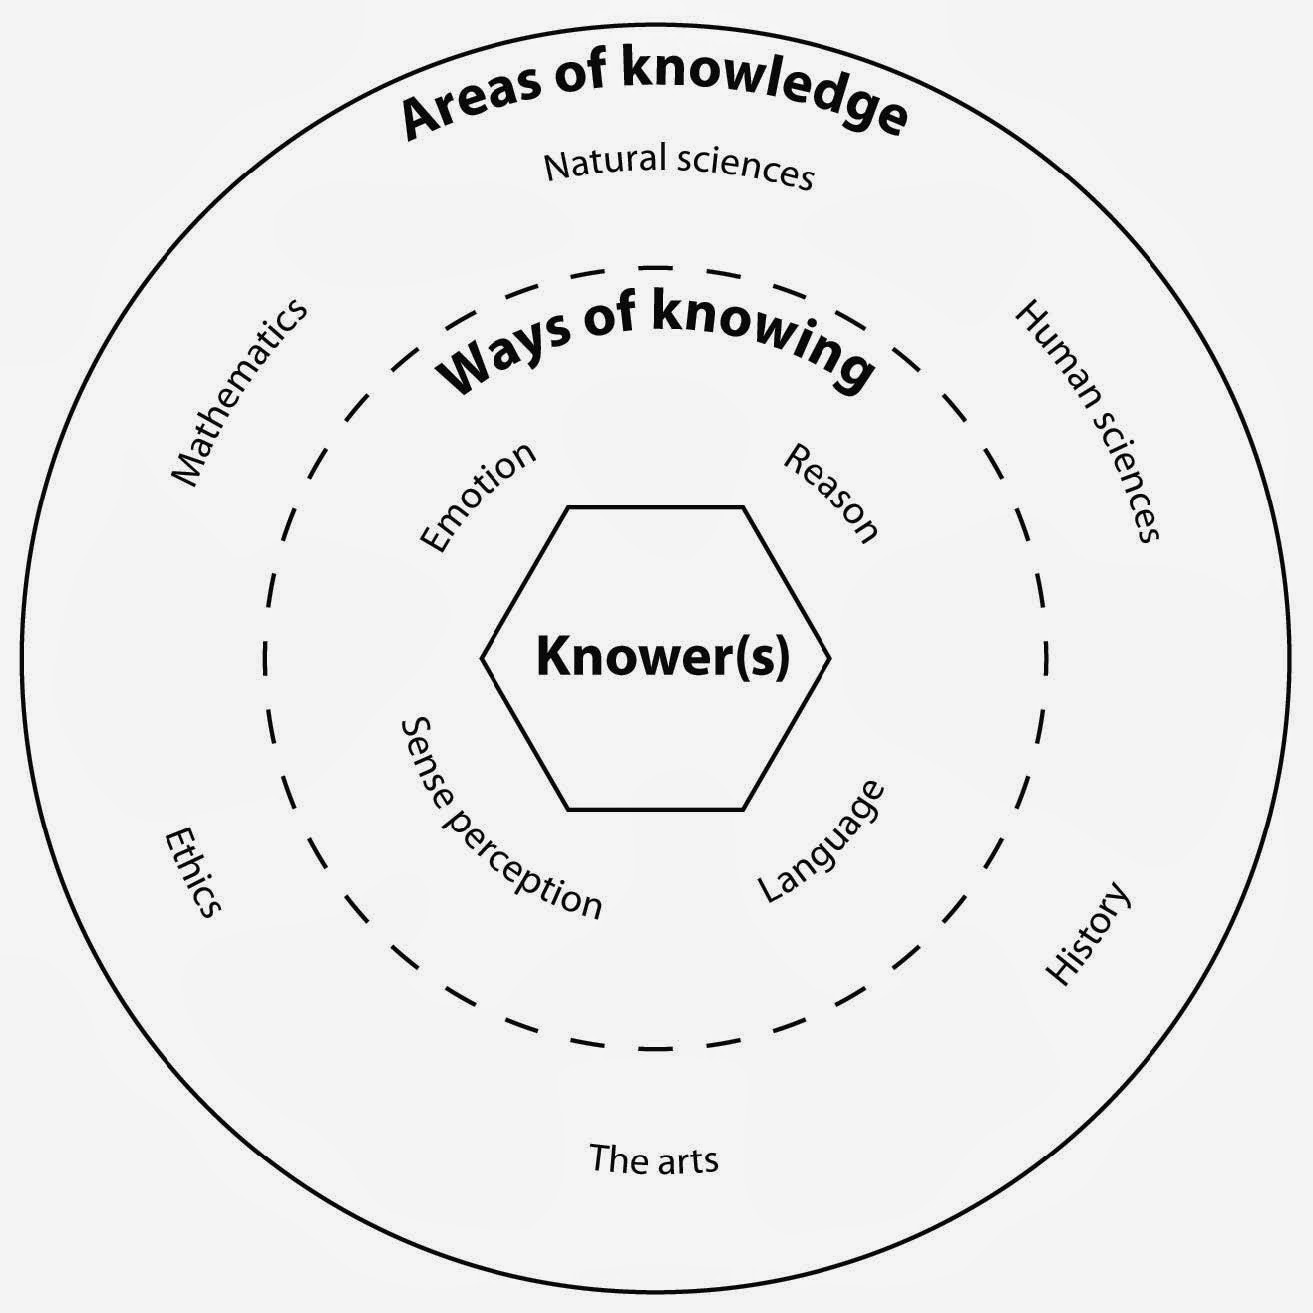 tok diagram ways of knowing diagram new ways of knowing added to tok diagram